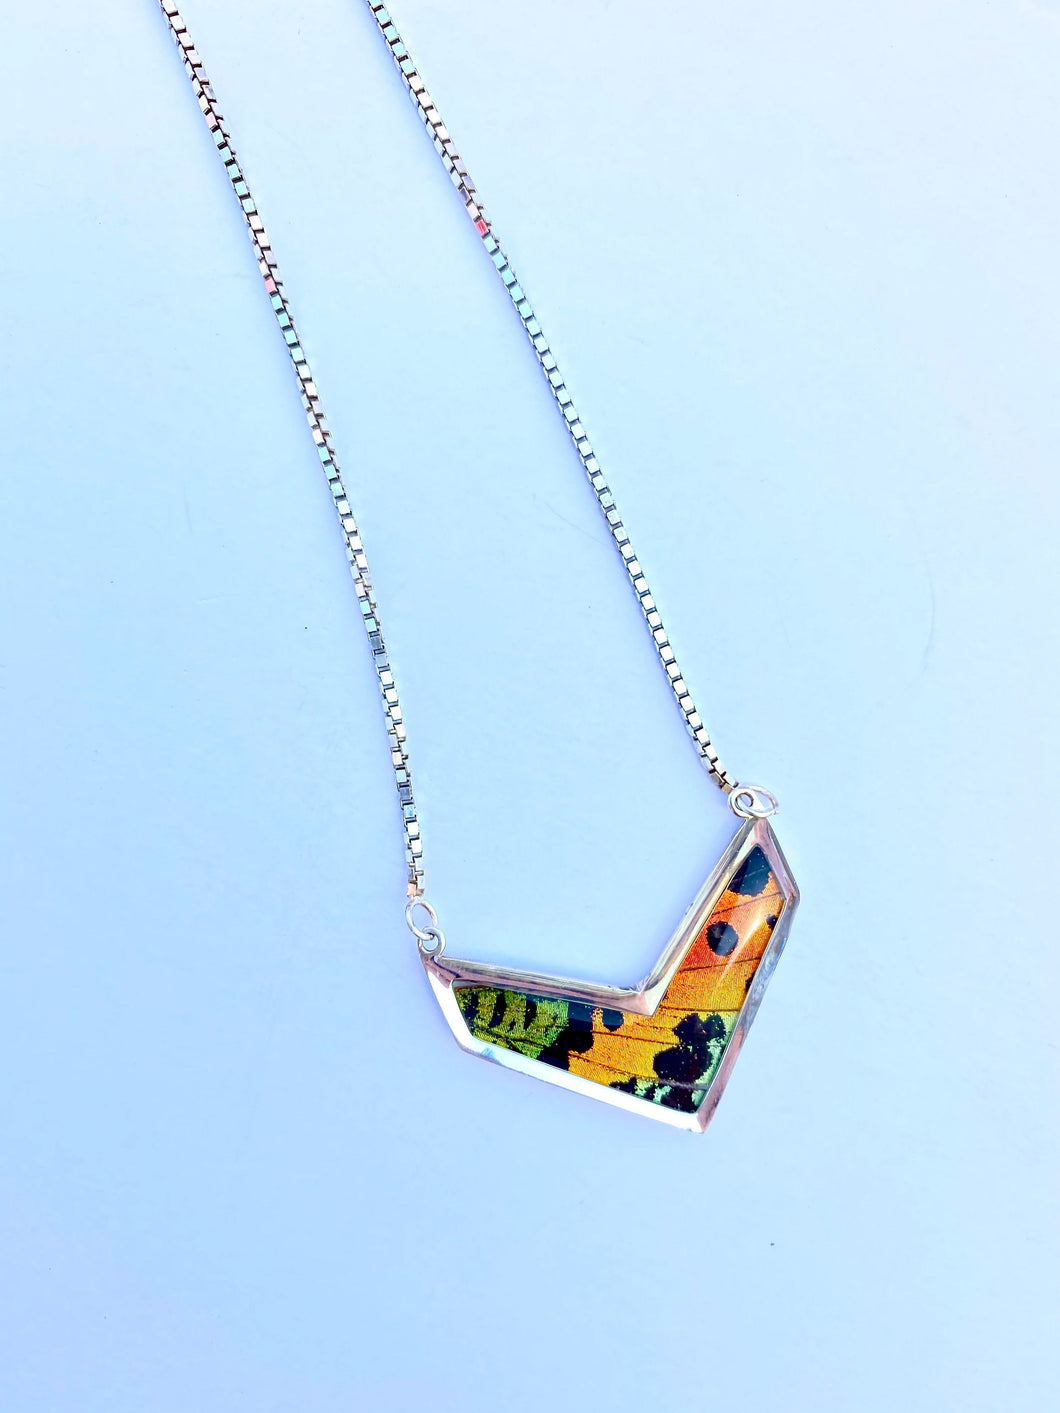 Butterfly Wing Necklace Pendant Jewelry - Rainbow Sunset Moth Chevron